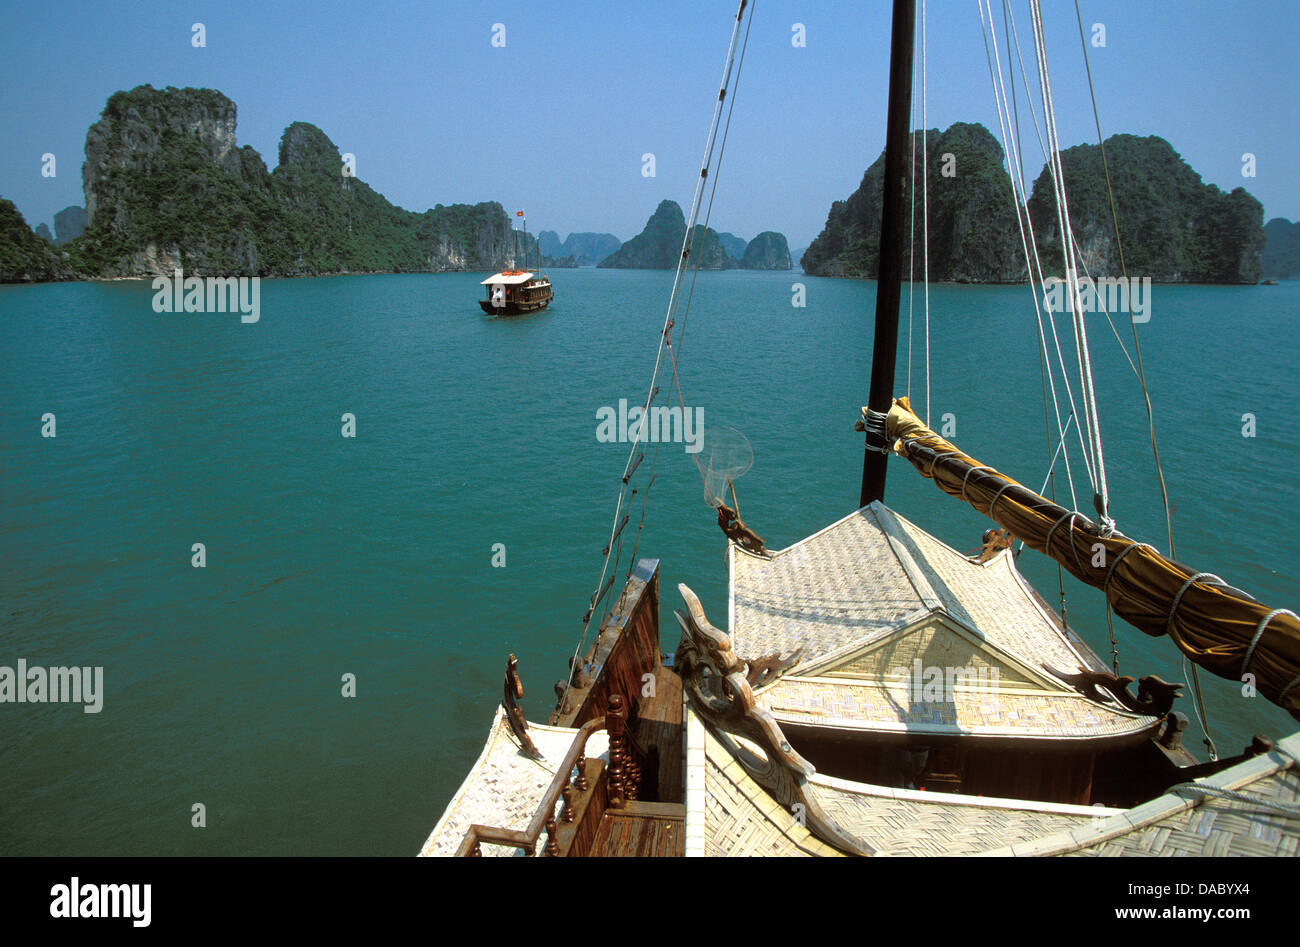 Sailing boat in Ha-Long Bay, UNESCO World Heritage Site, Vietnam, Indochina, Southeast Asia, Asia - Stock Image